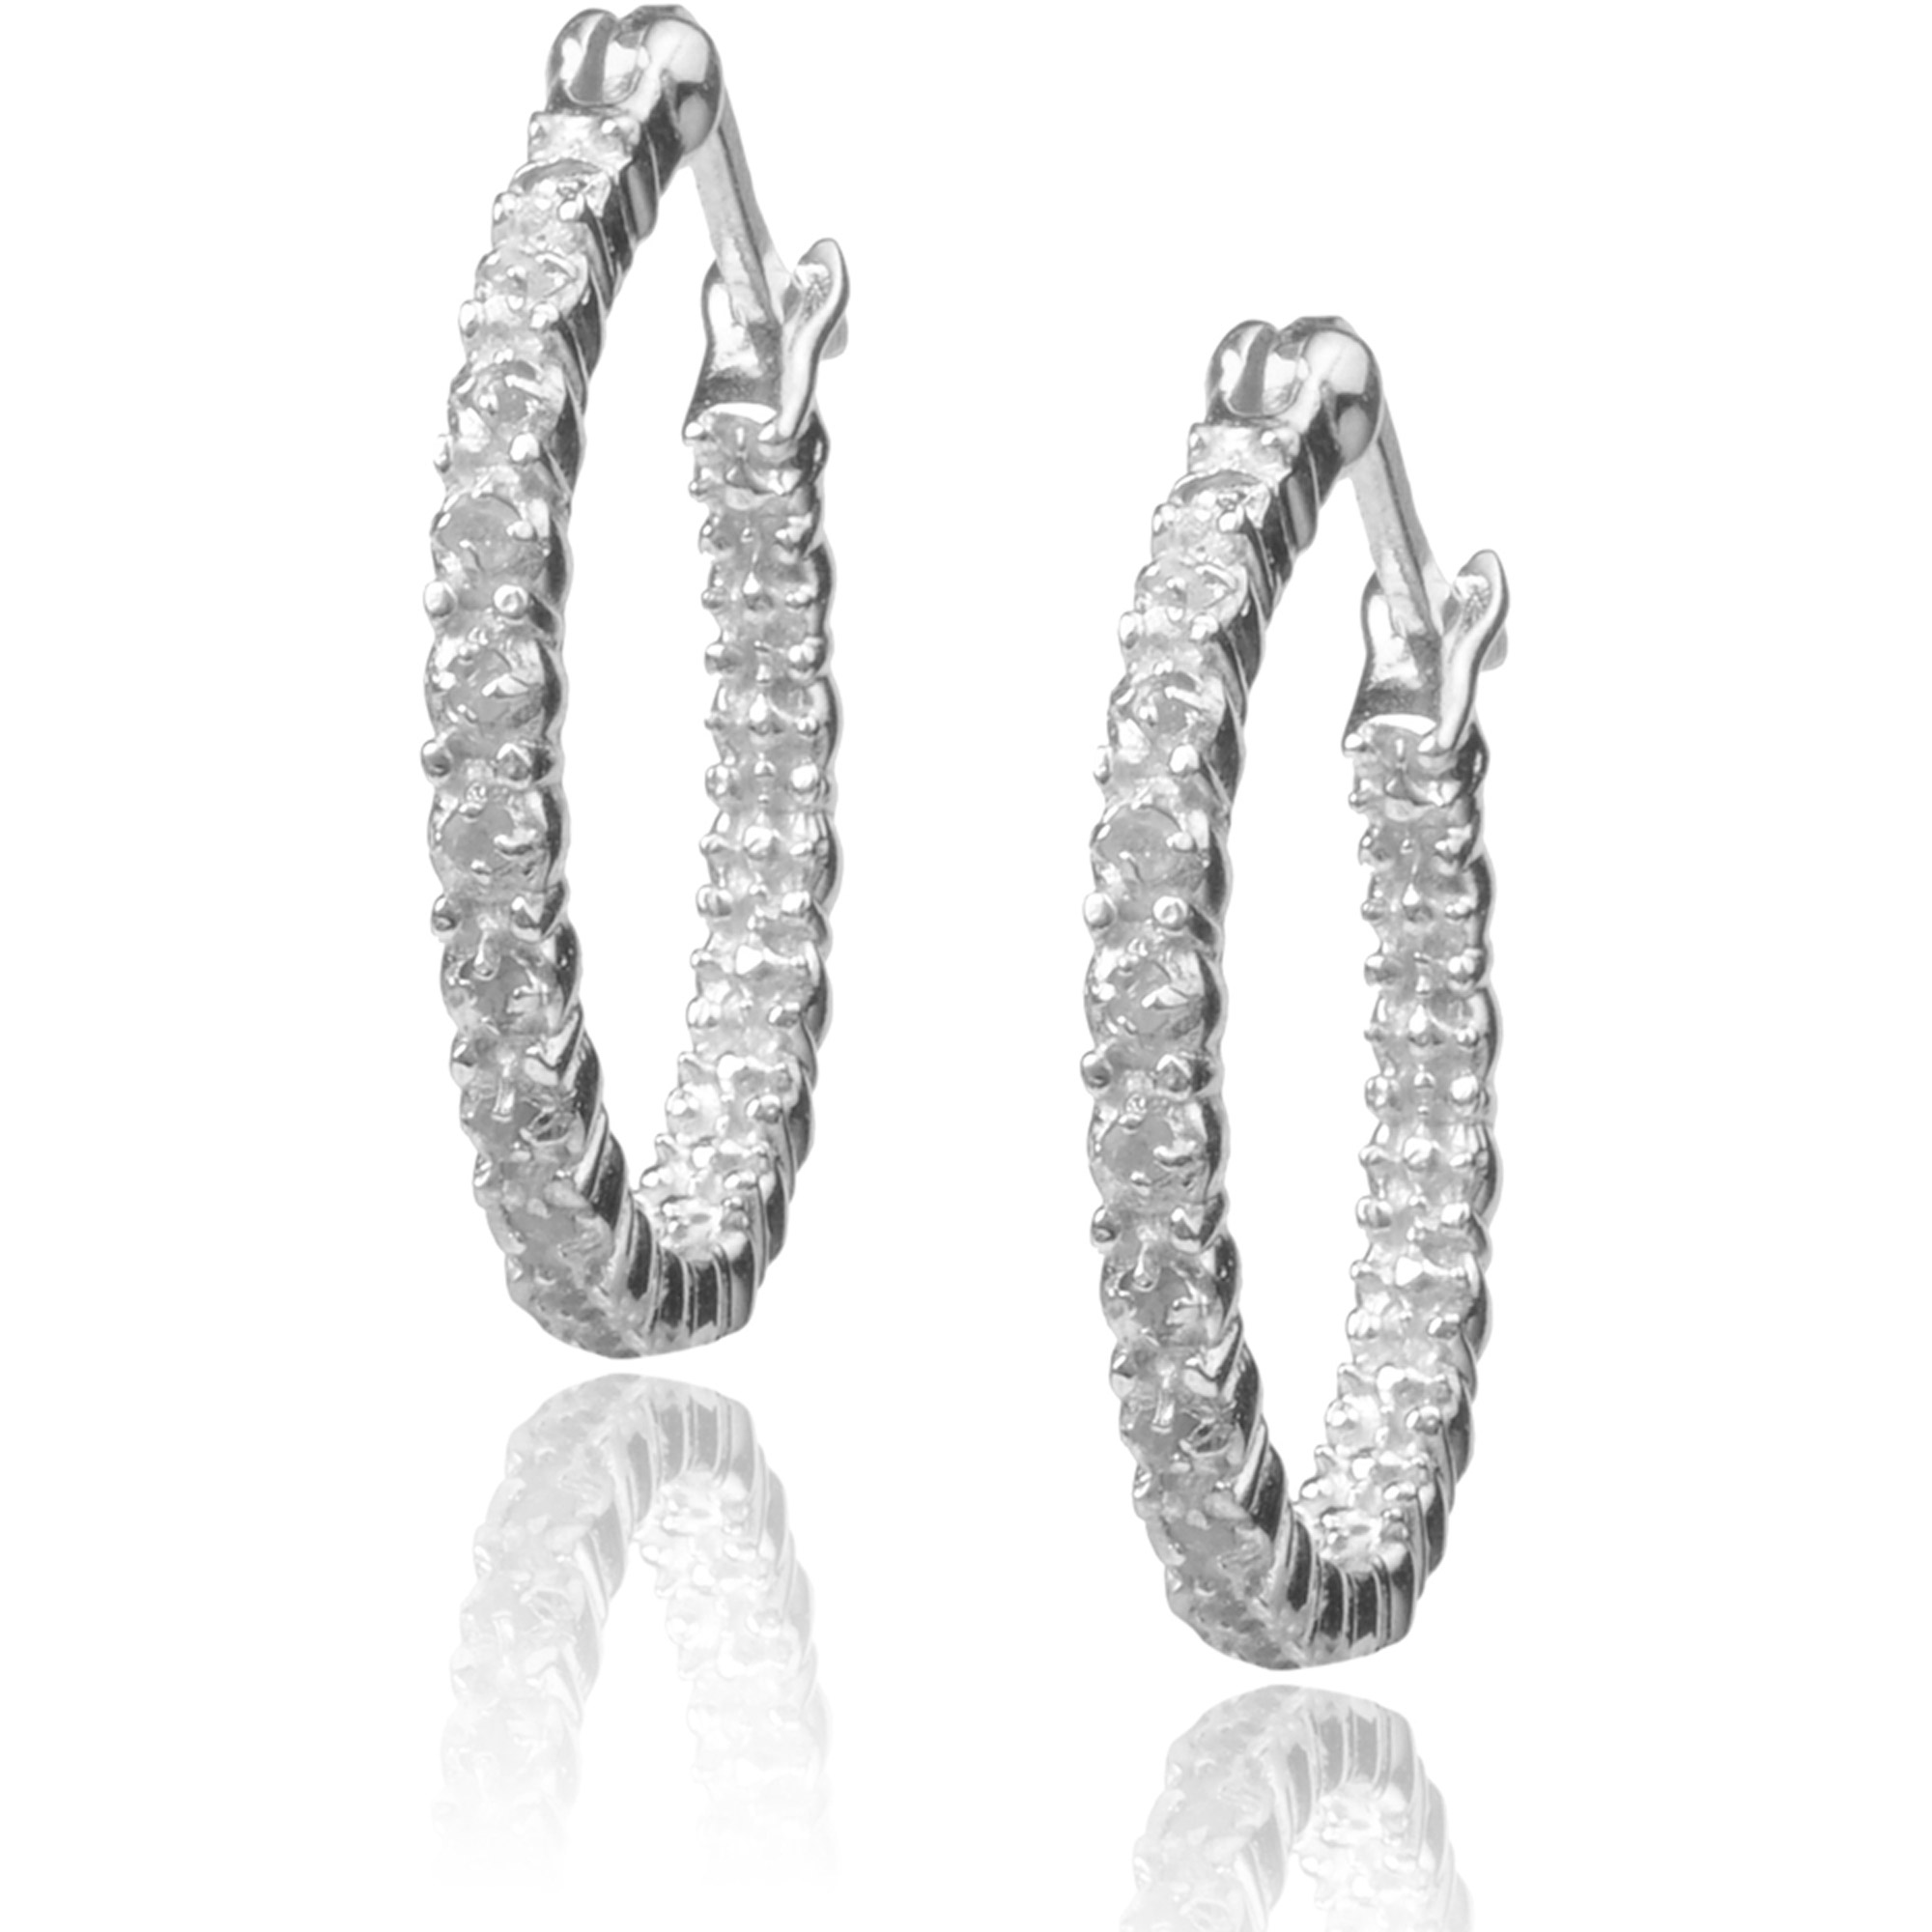 Brinley Co. Women's 1 Carat T.W. Diamond Sterling Silver Hoop Earrings, Silver